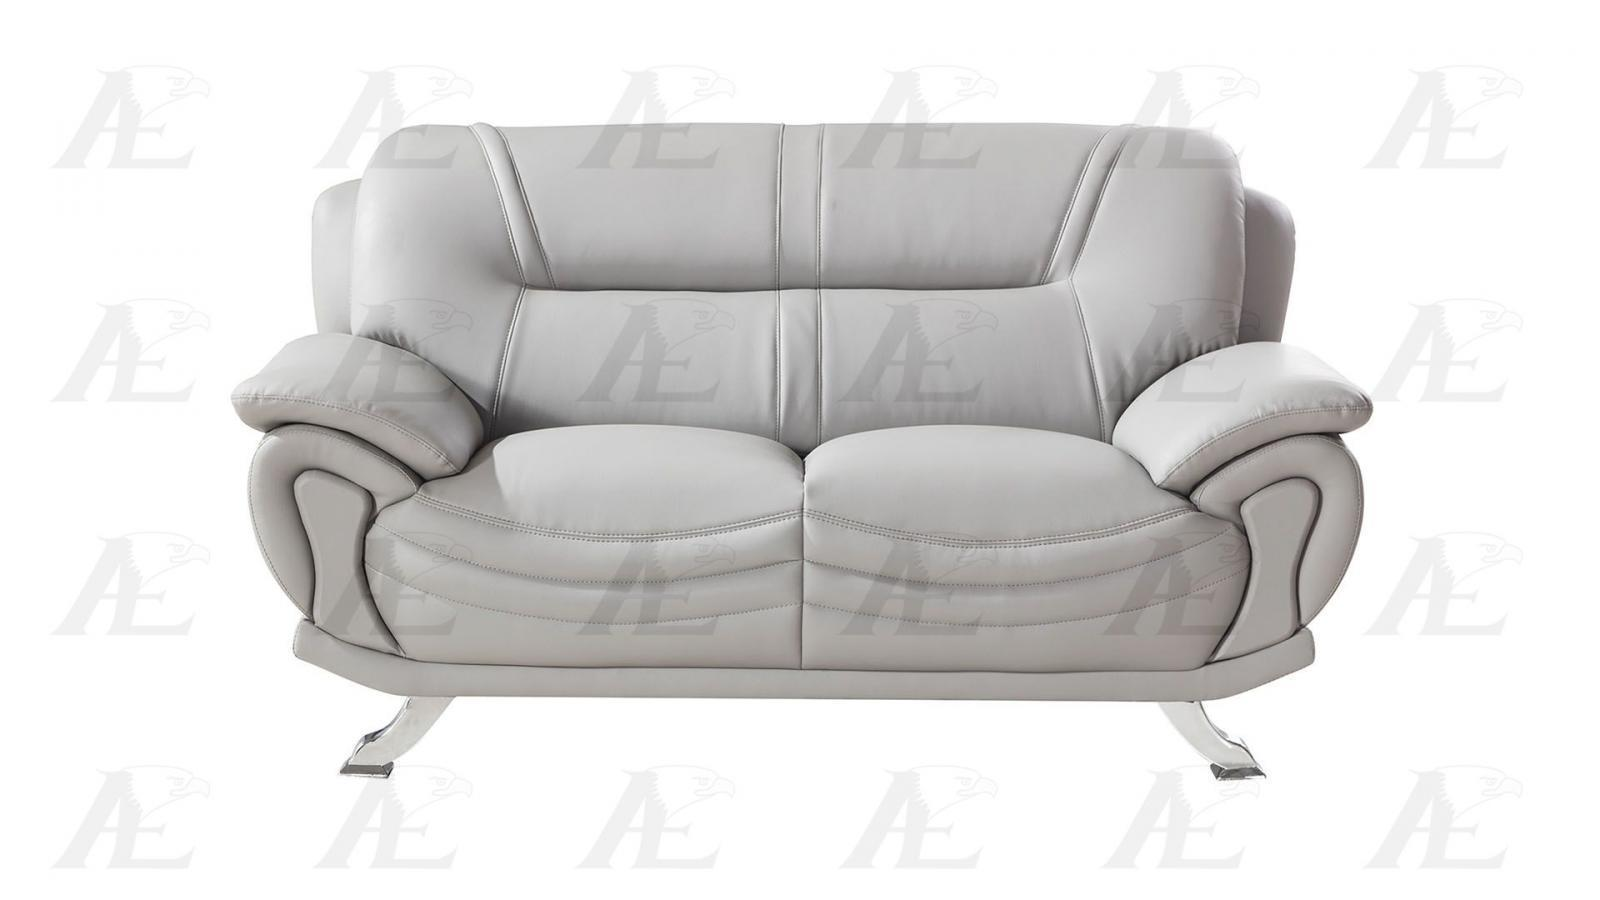 american eagle ae388 gr gray faux leather sofa and loveseat set 2pcs